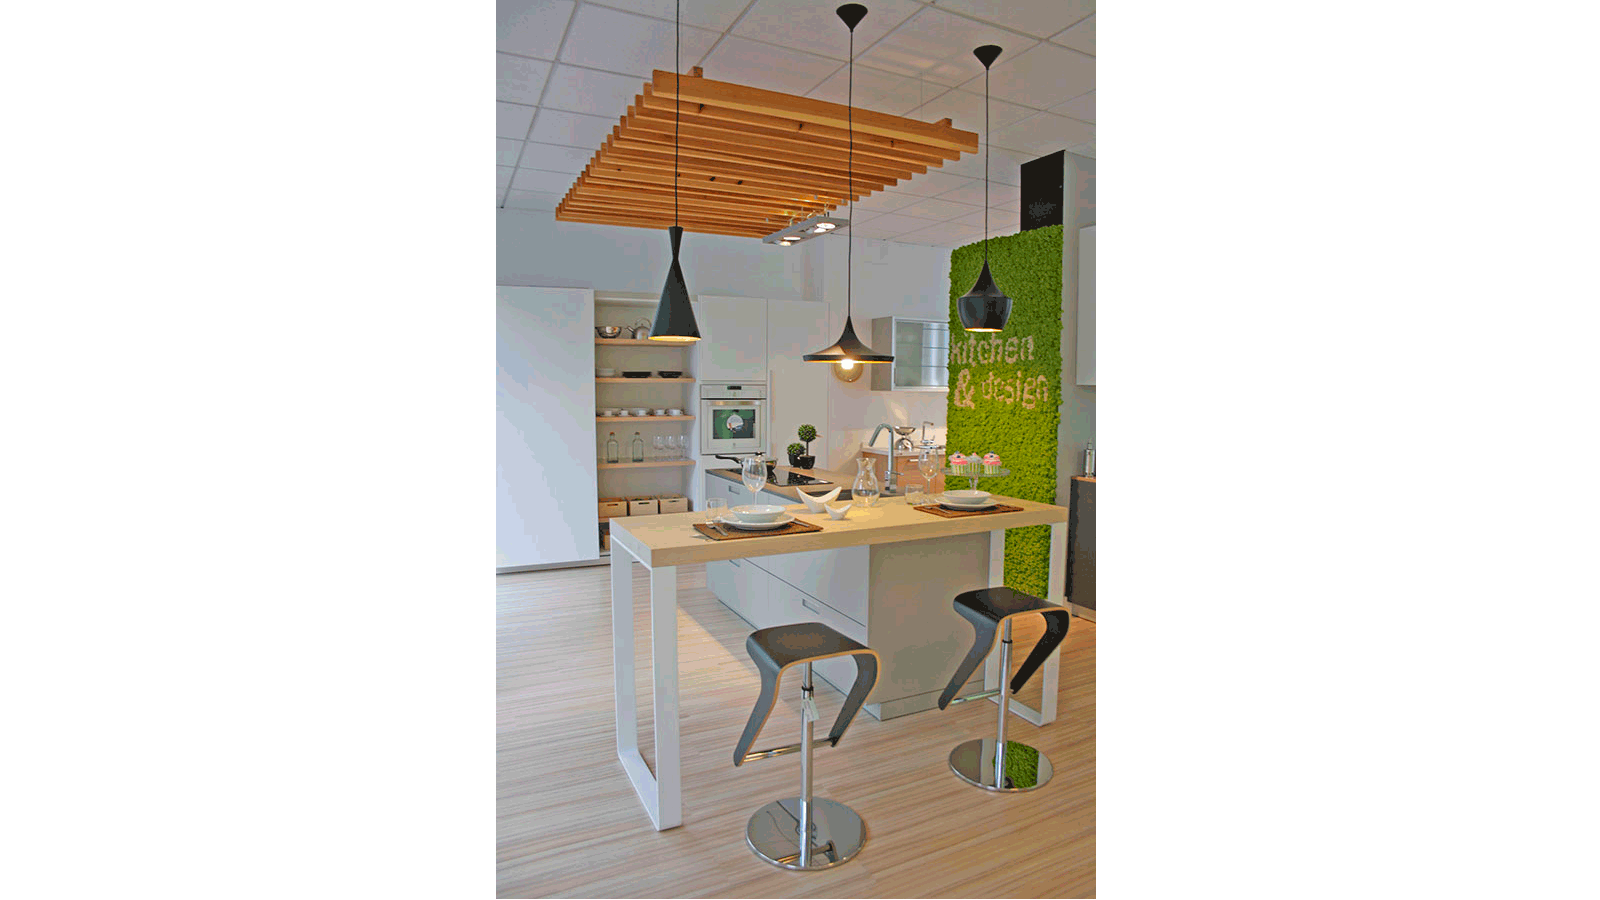 Greenarea_decoracion_vegetal_oficinas_Viokox-2g